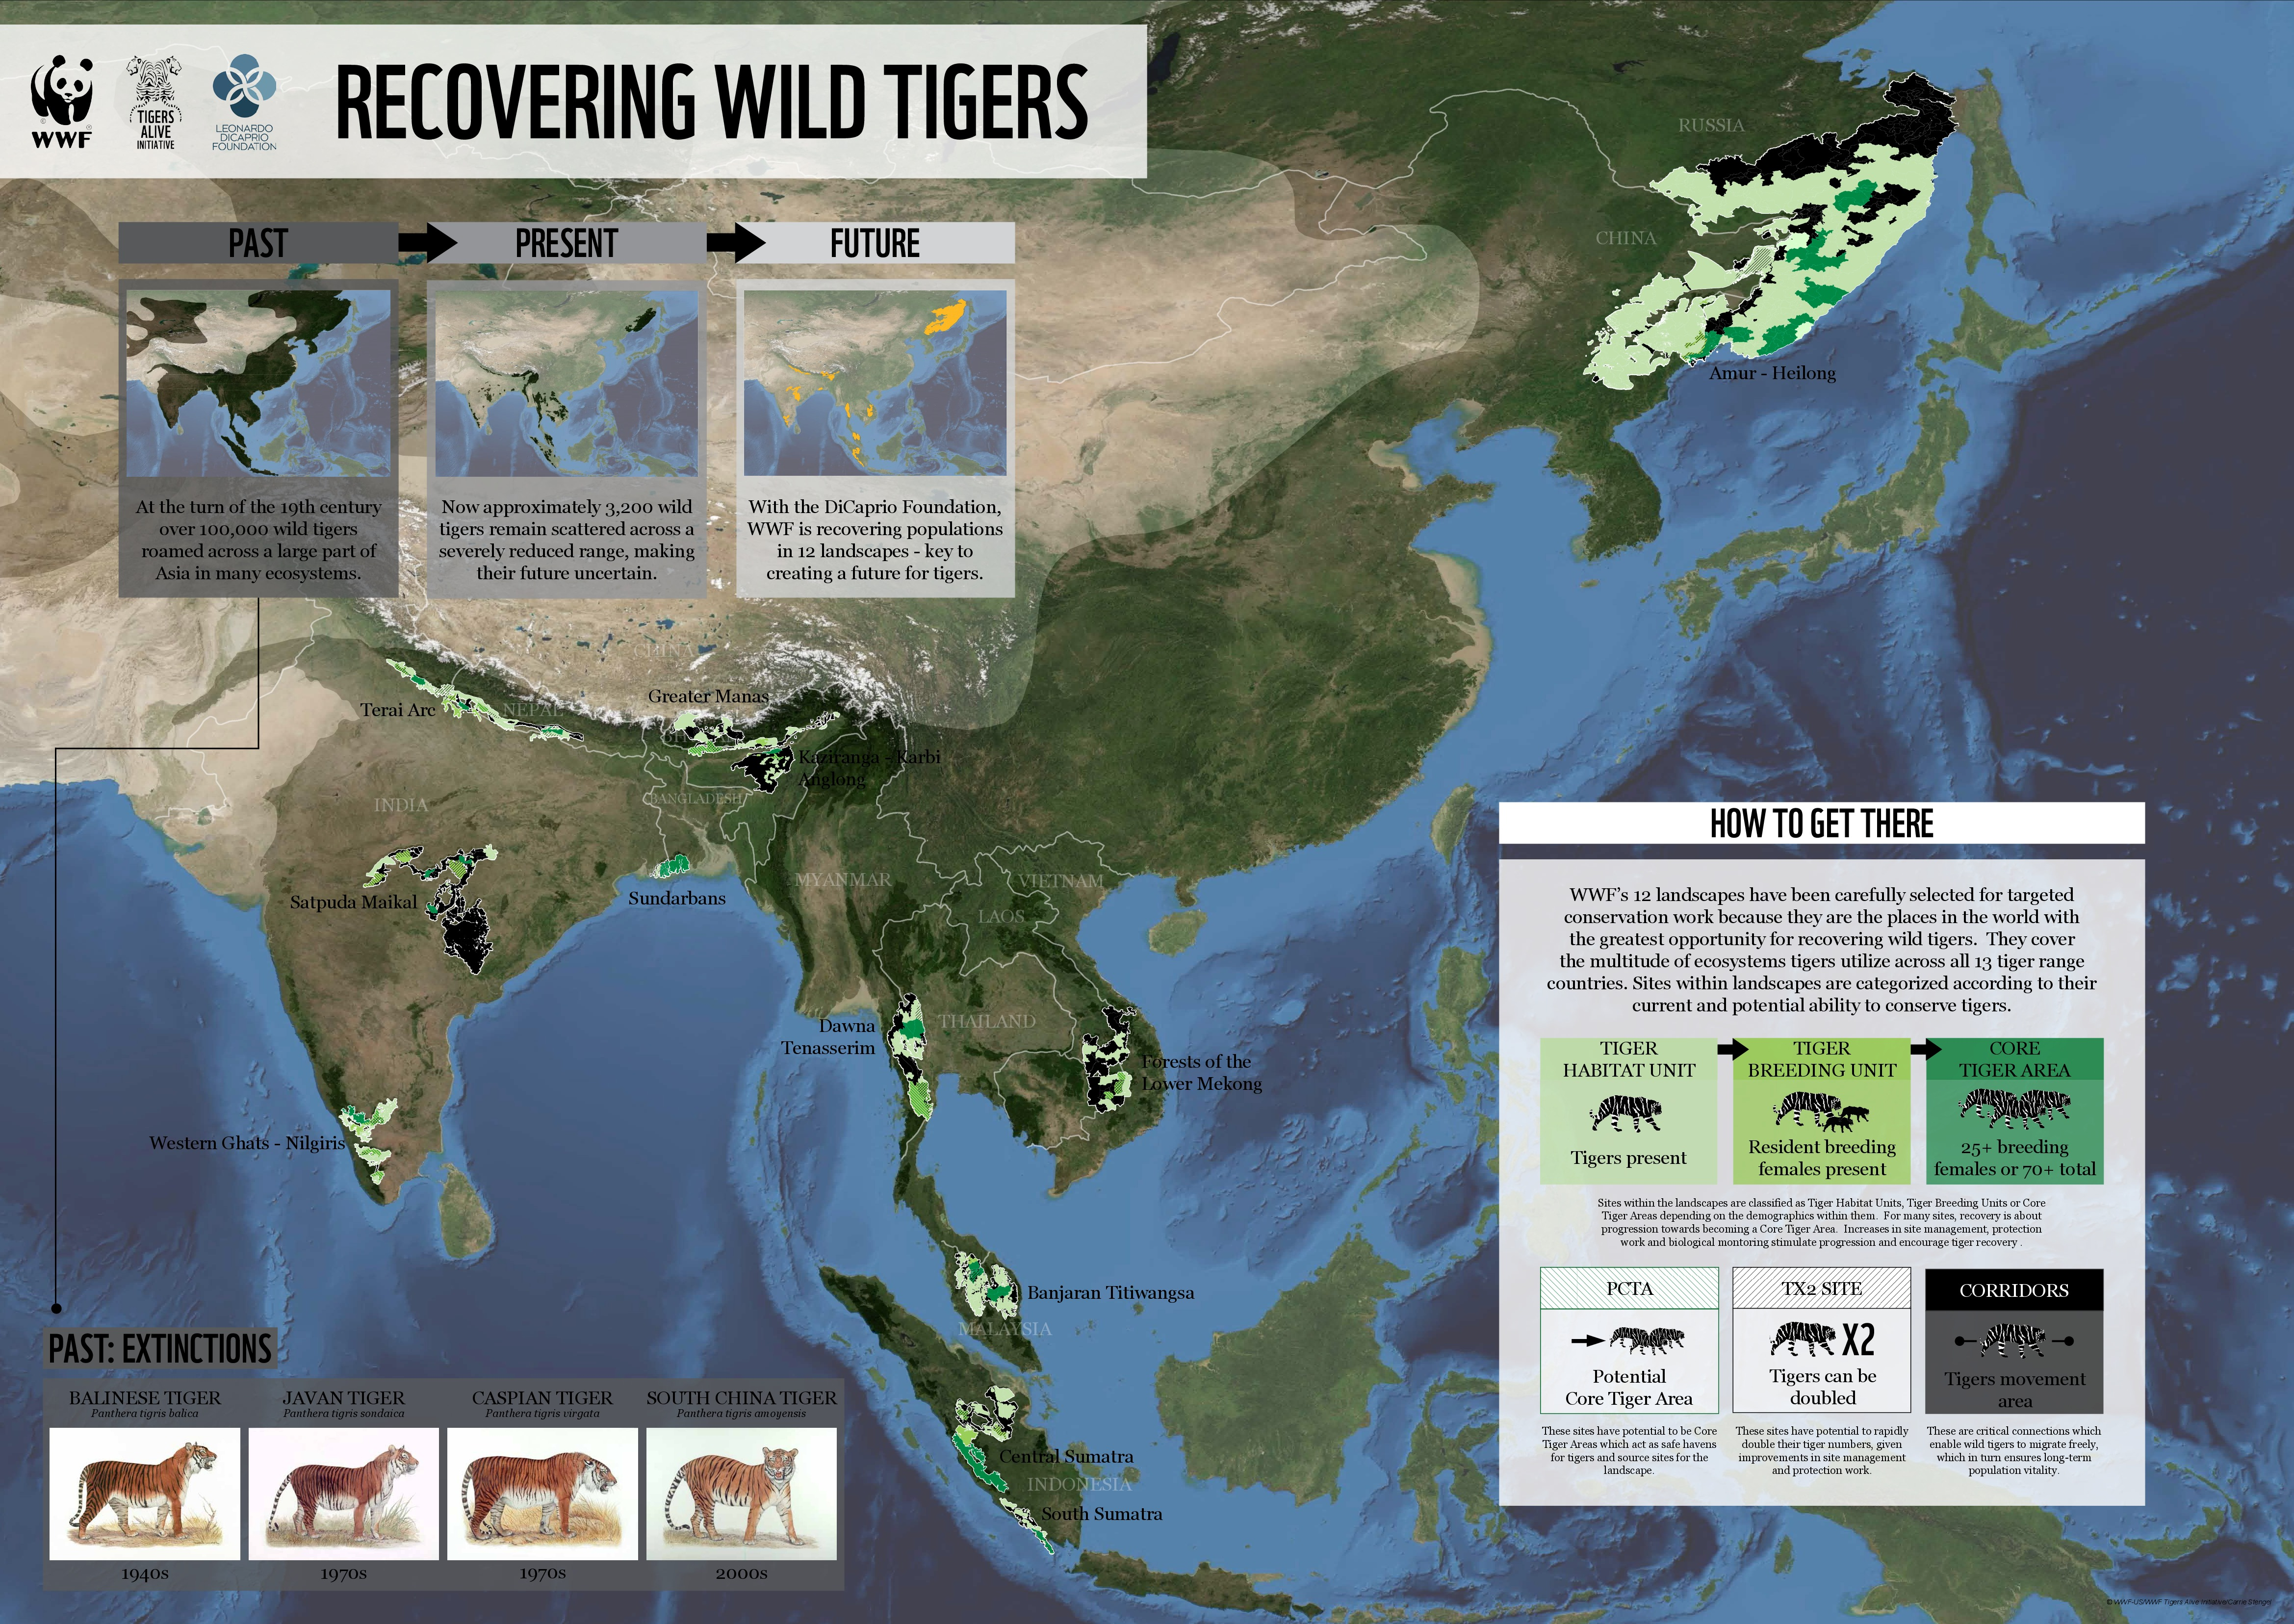 recovering-wild-tigers_52563e5962dfc